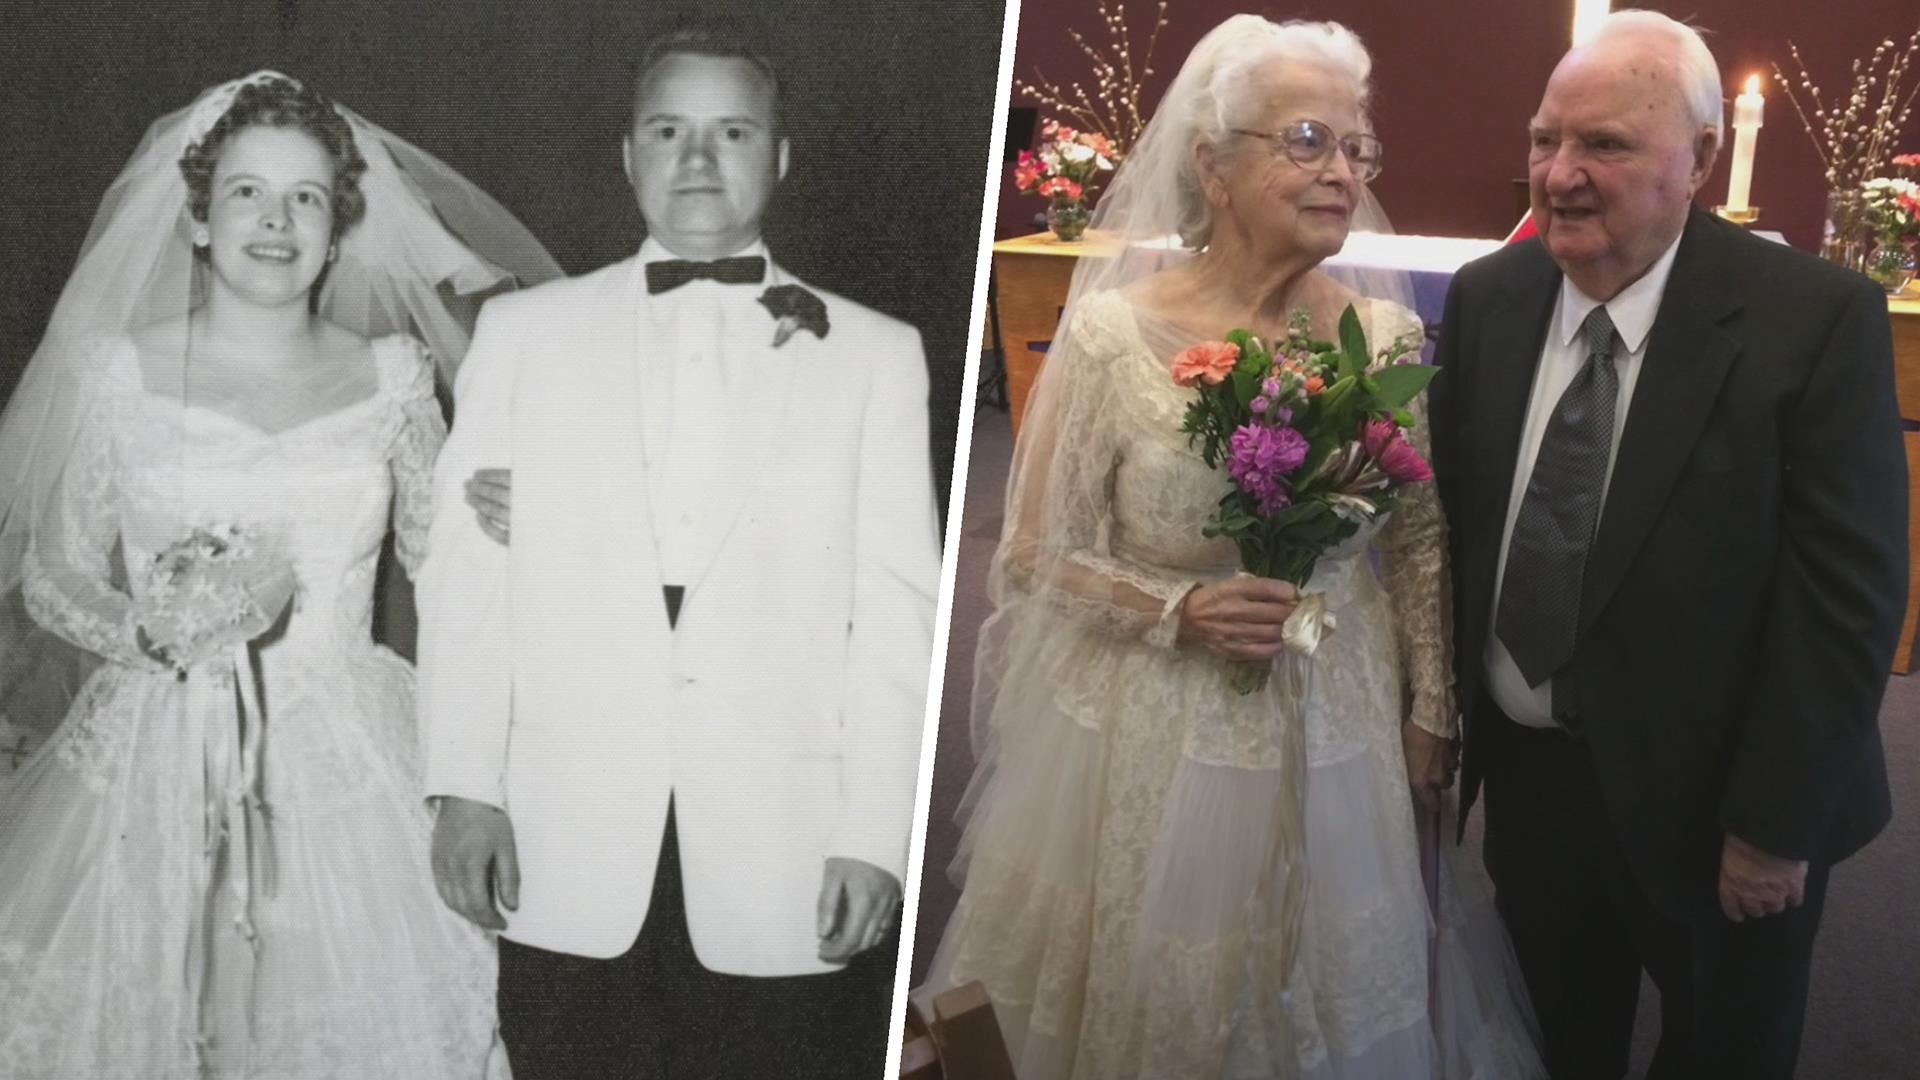 The dress of my dreams woman rewears wedding gown years later